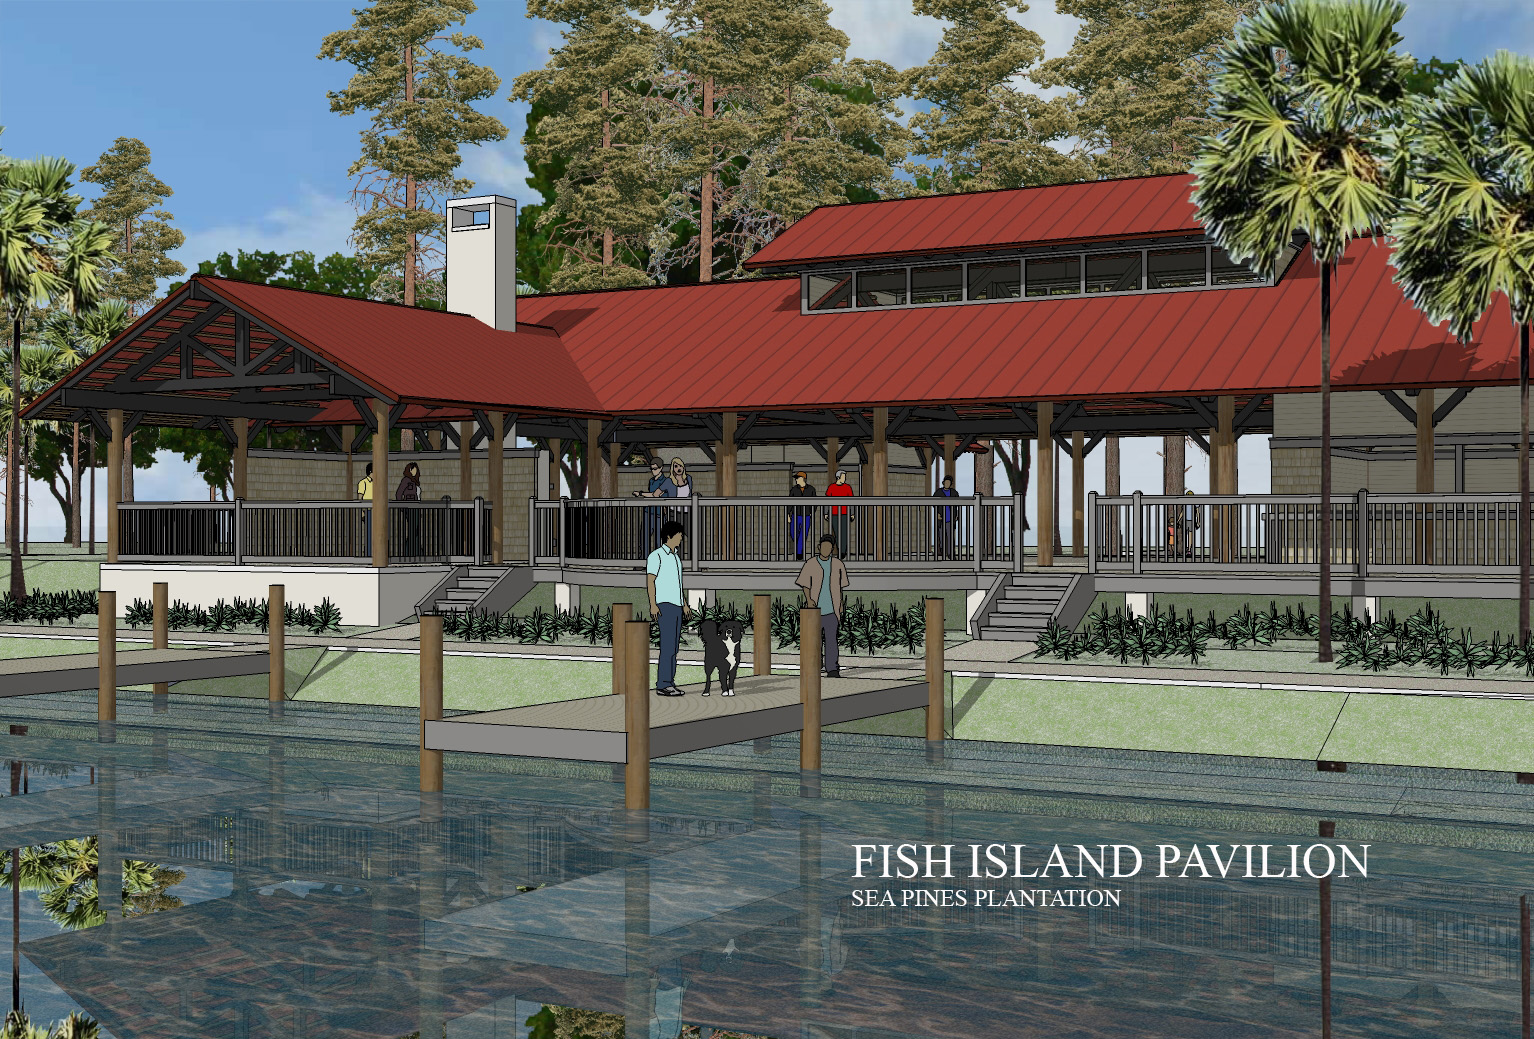 Fish Island pavillion, recreational Community Project, Sea Pines plantation, Hilton head, SC